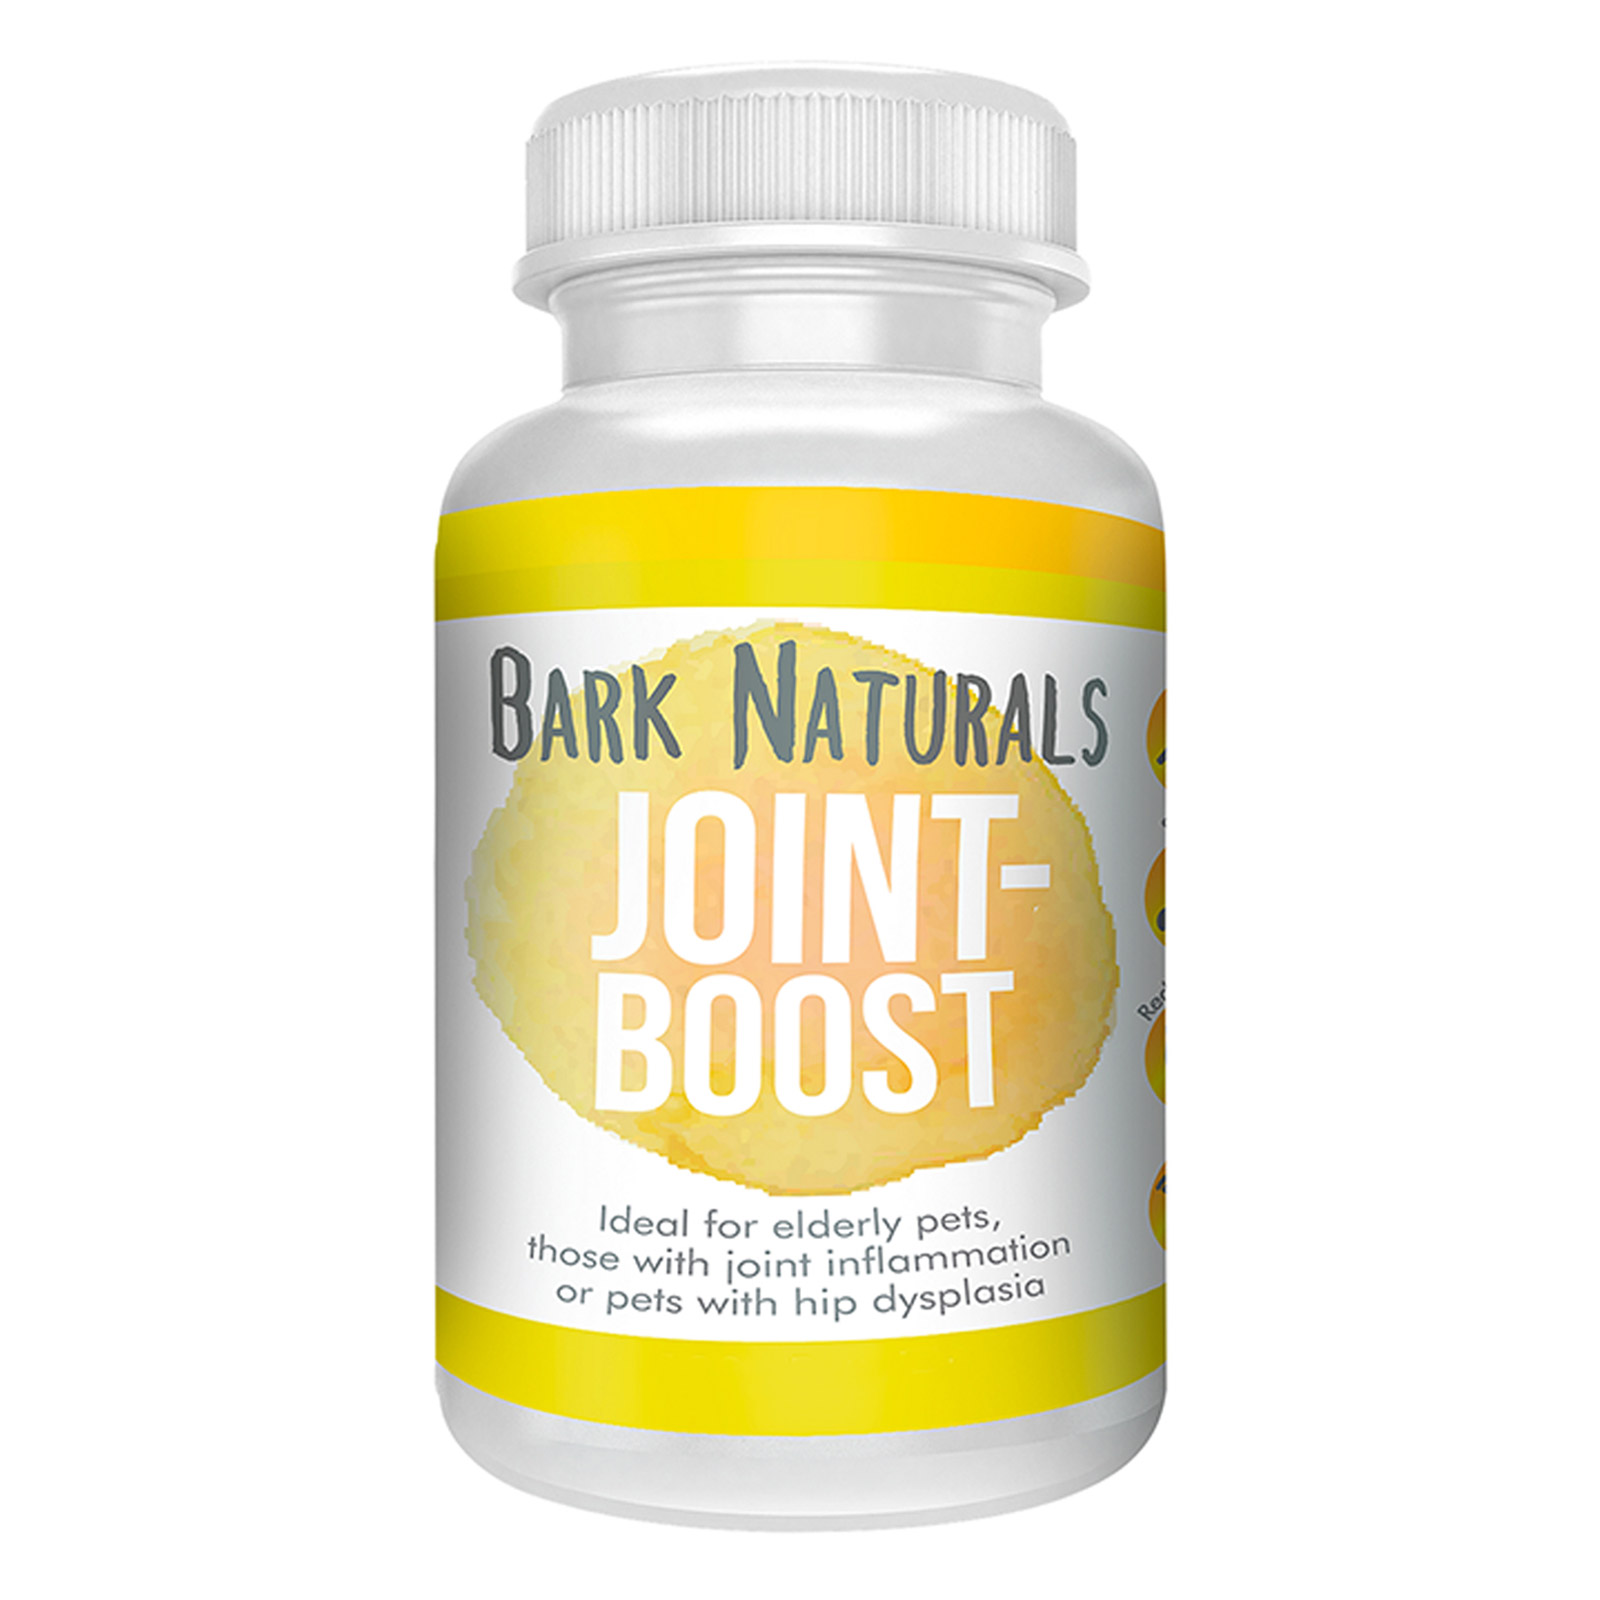 Bark Naturals Joint-Boost Supplement